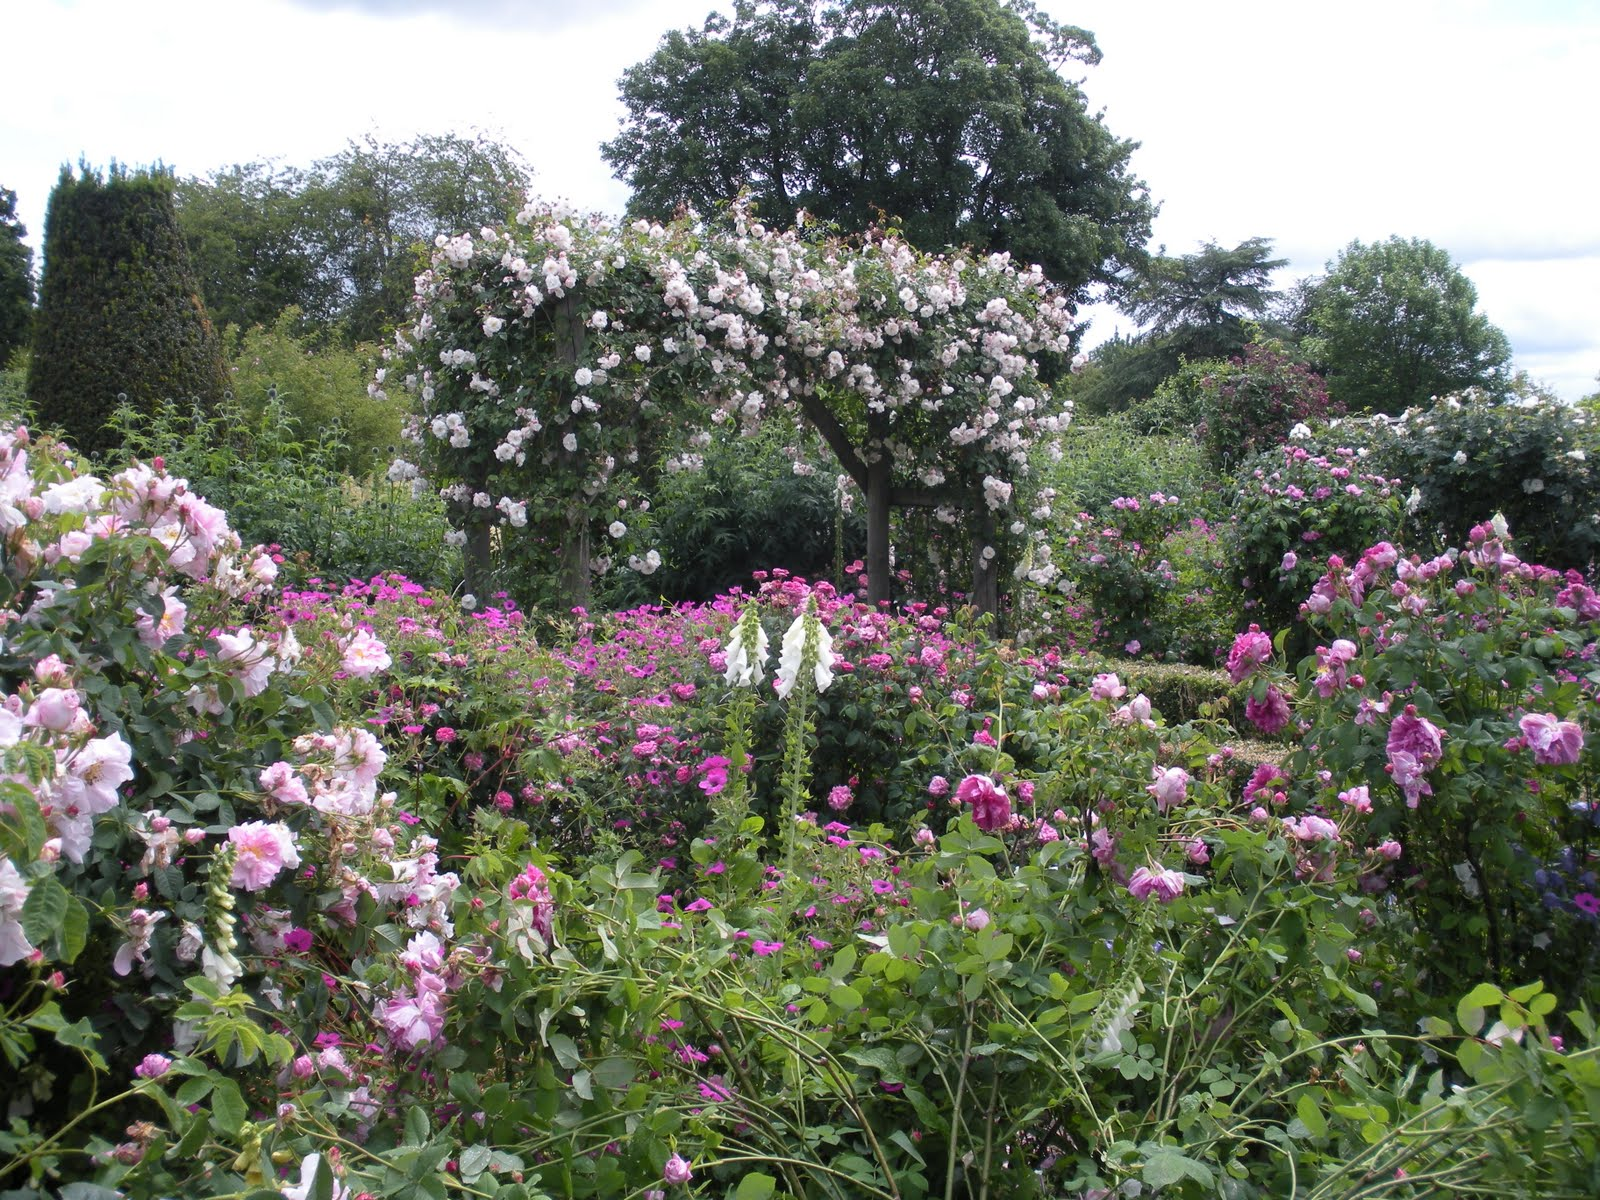 Backyard rose garden - The Rose Gardens At Mottisfont Abbey